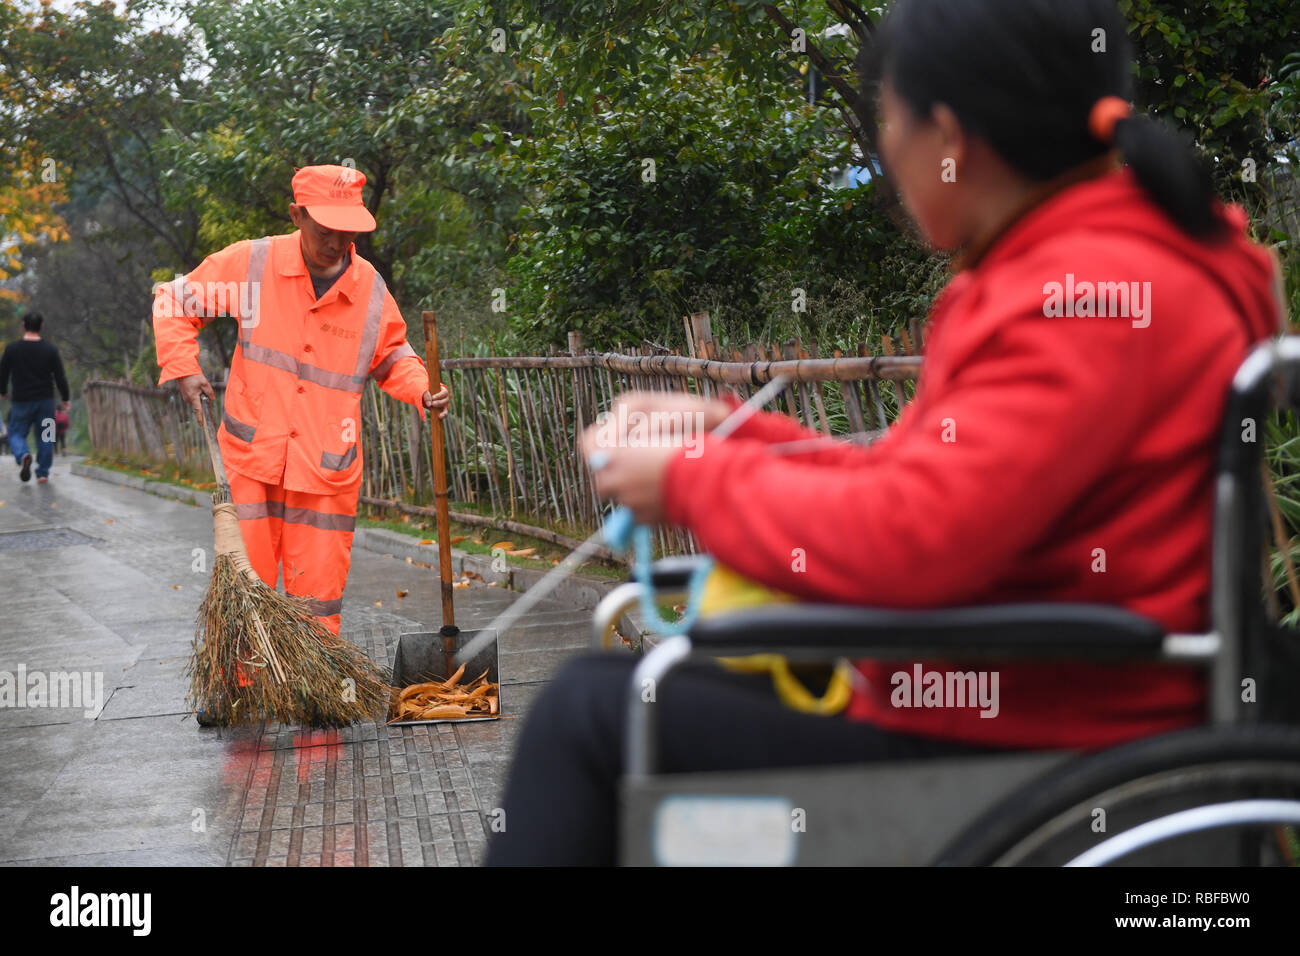 (190110) -- LONGYAN, Jan. 10, 2019 (Xinhua) -- Sanitation worker Dong Jidong cleans the streets accompanied by his handicapped wife Dong Jinxiang in Xinluo District of Longyan City, southeast China's Fujian Province, Jan. 9, 2019. Due to femoral head necrosis disease, Dong Jinxiang has been living on a wheelchair for about a decade. To take care of his handicapped wife, Dong Jidong, who himself has been afflicted with ankylosing spondylitis, gave up his work in a cement plant and chose to clean the streets near their home two years ago just in order to take better care of his wife. Everyday, D - Stock Image